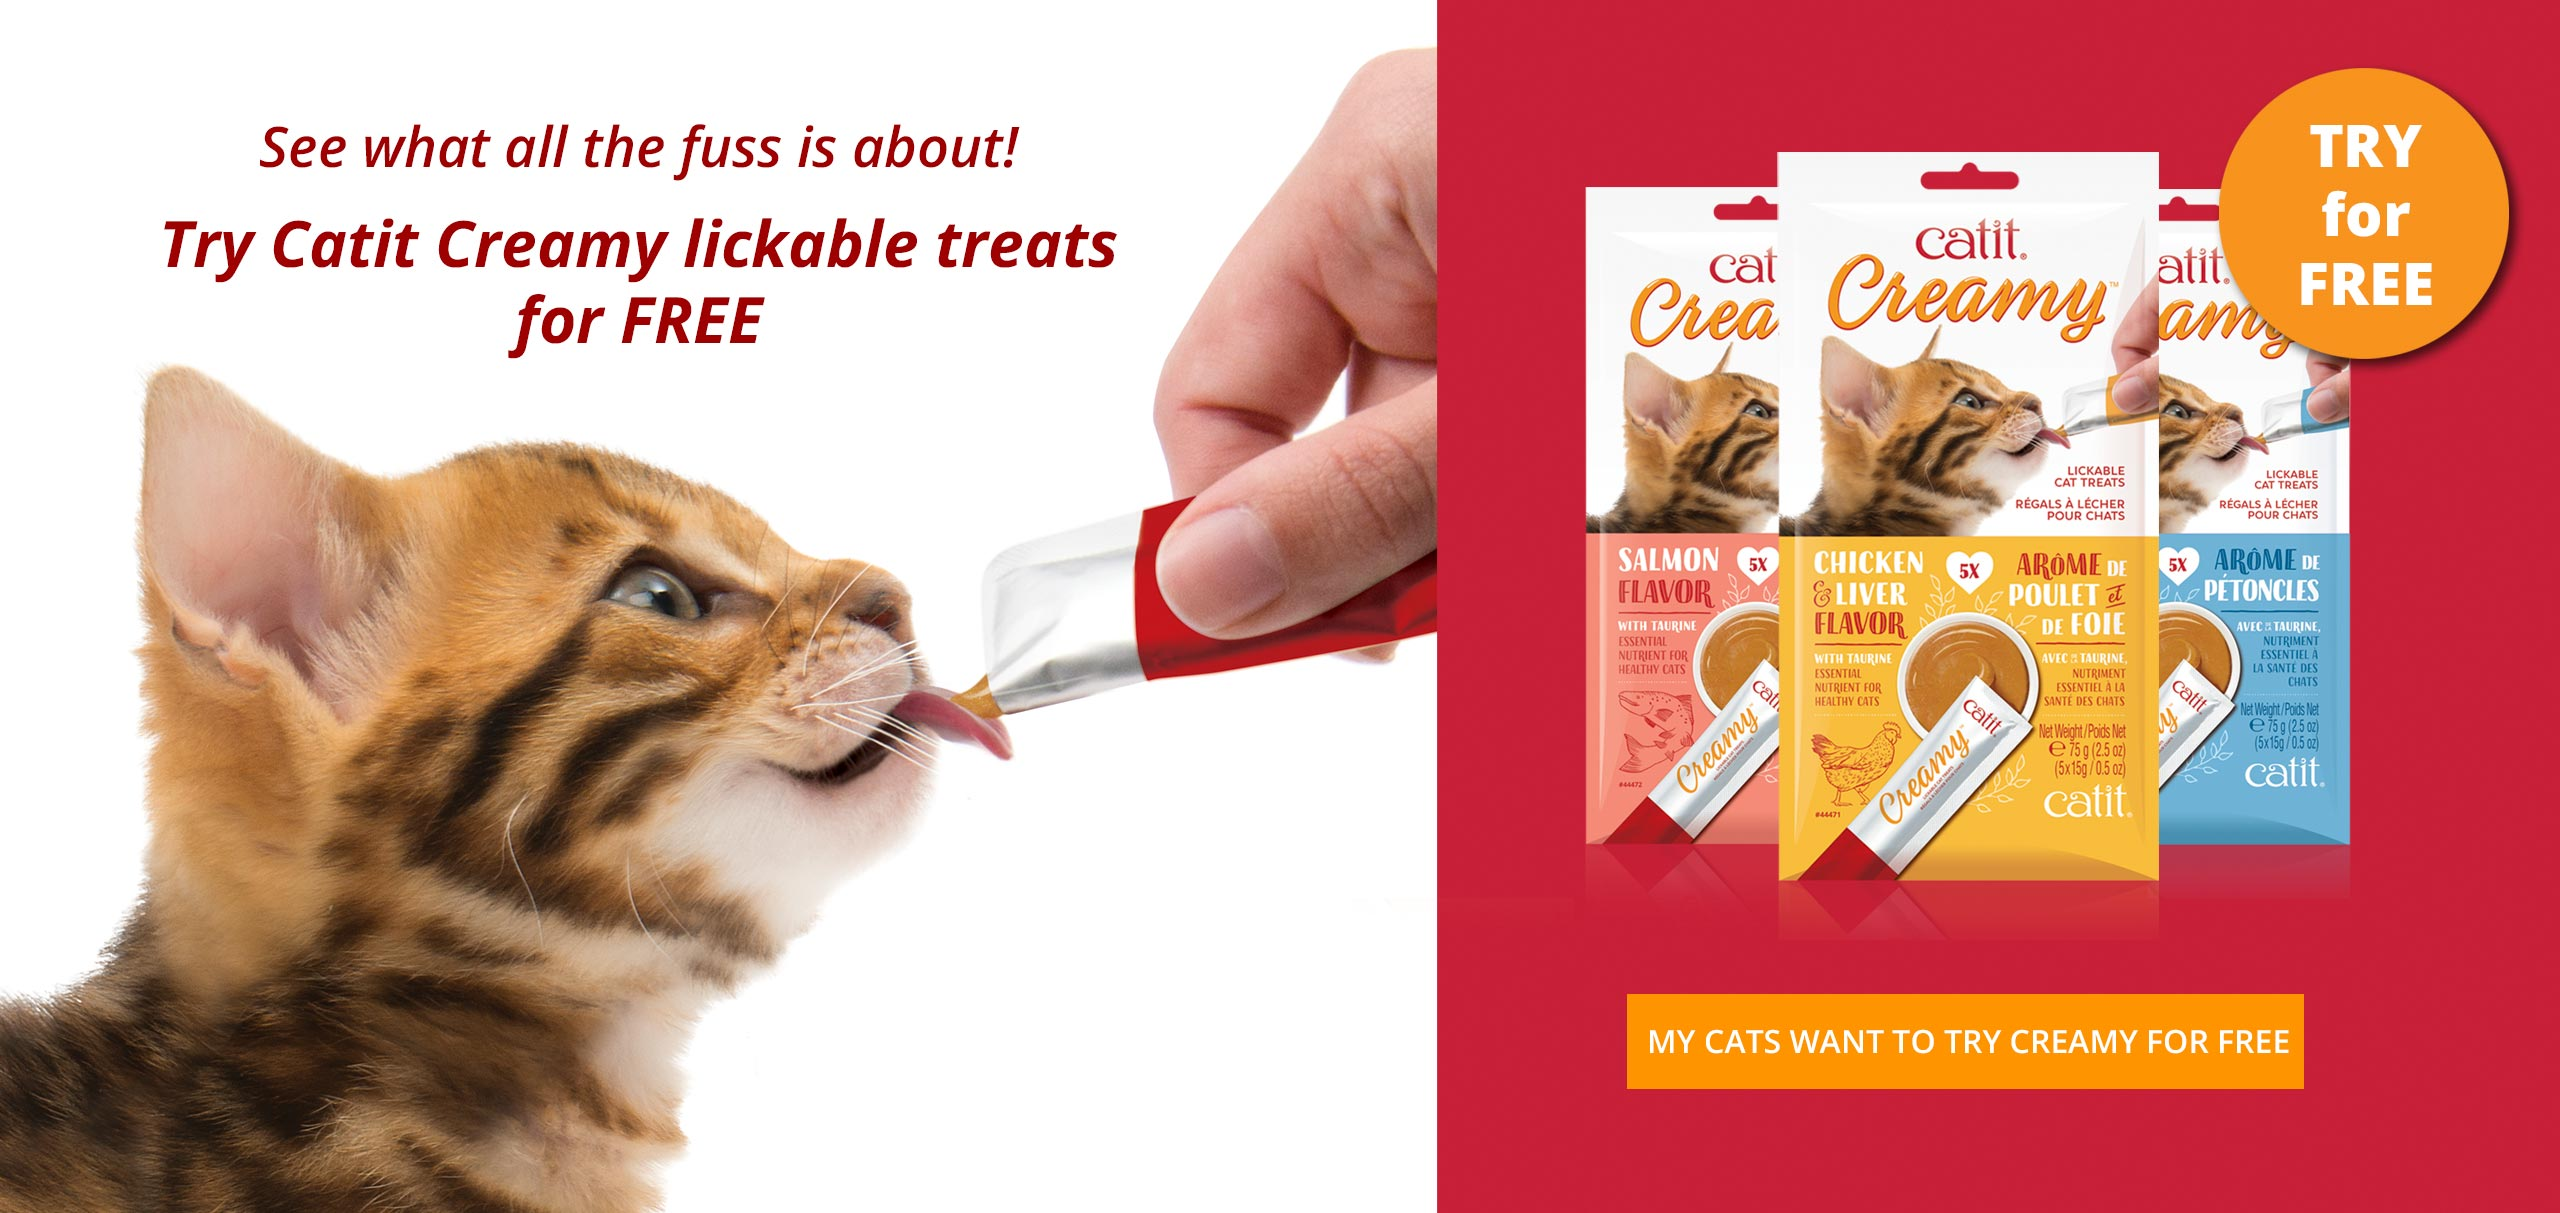 catit creamy lickable treat test and keep-new